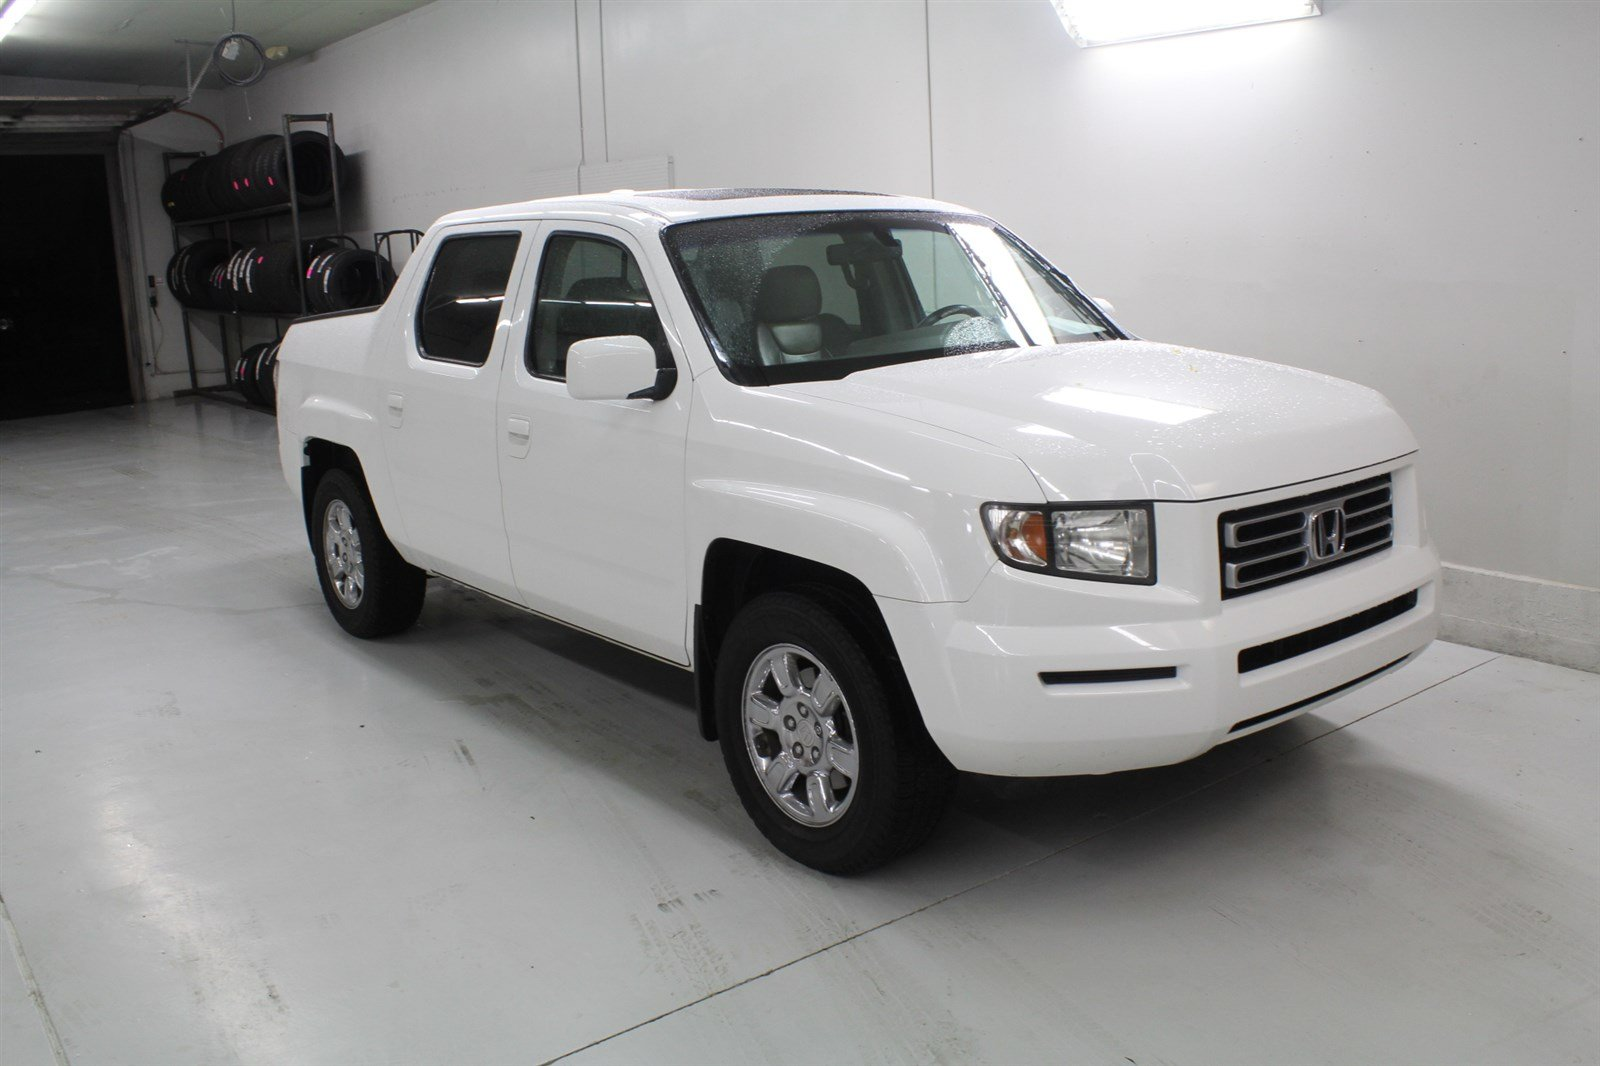 Pre Owned 2006 Honda Ridgeline Crew Cab RTL With MOONROOF 4x4